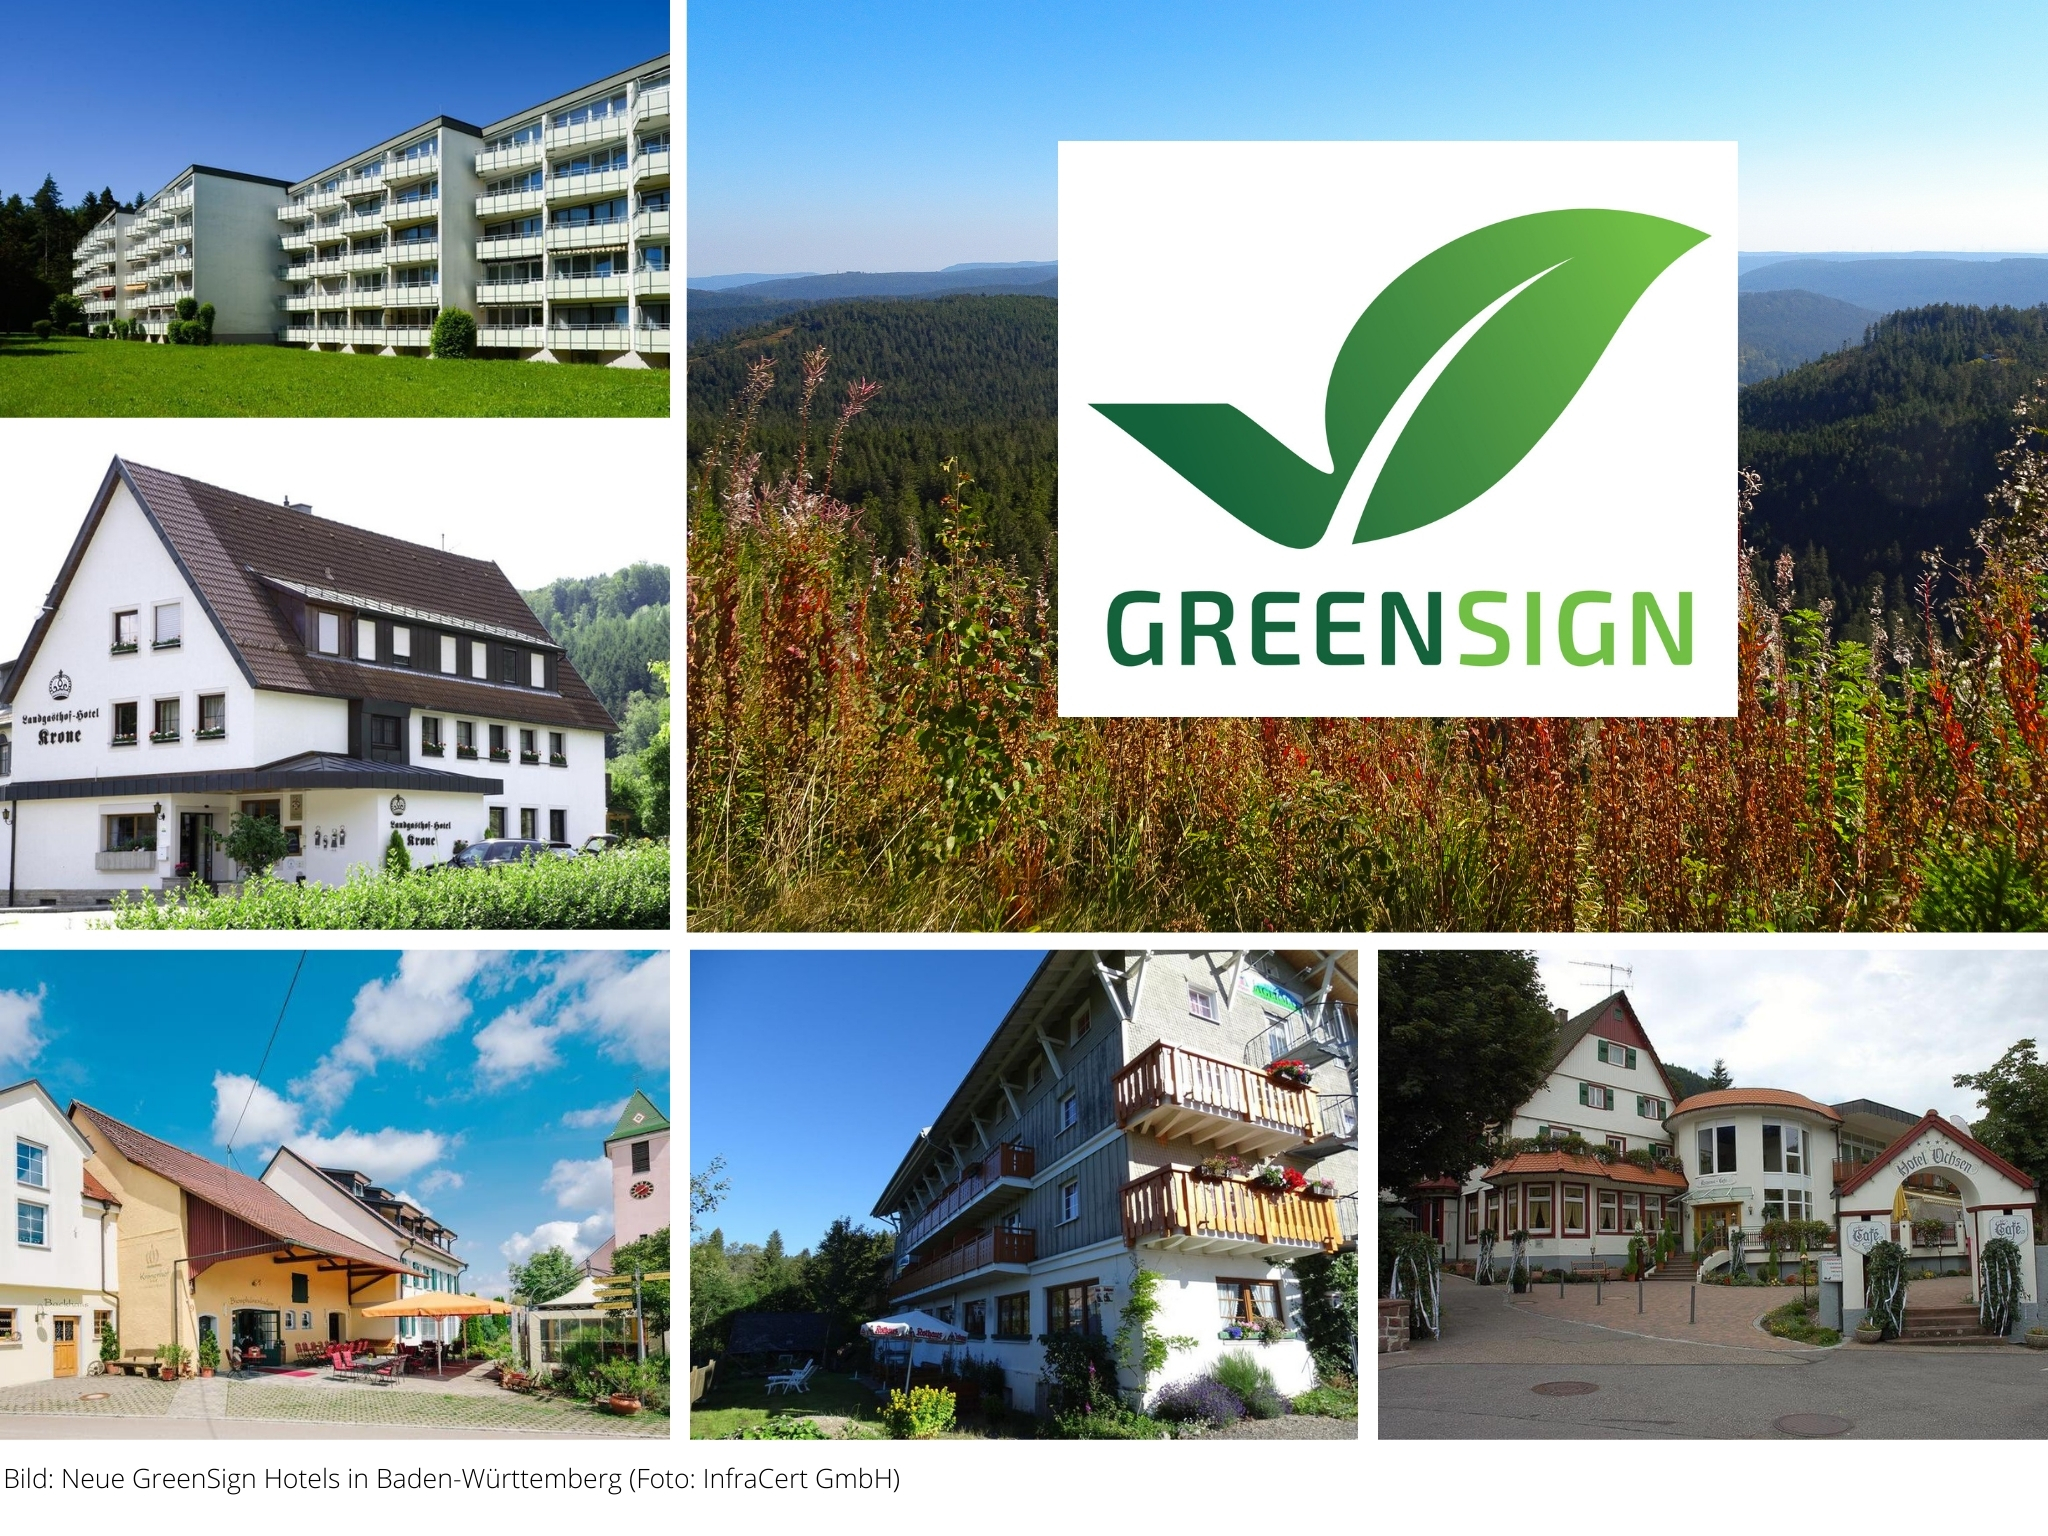 GreenSign Hotels Baden Wuerttemberg